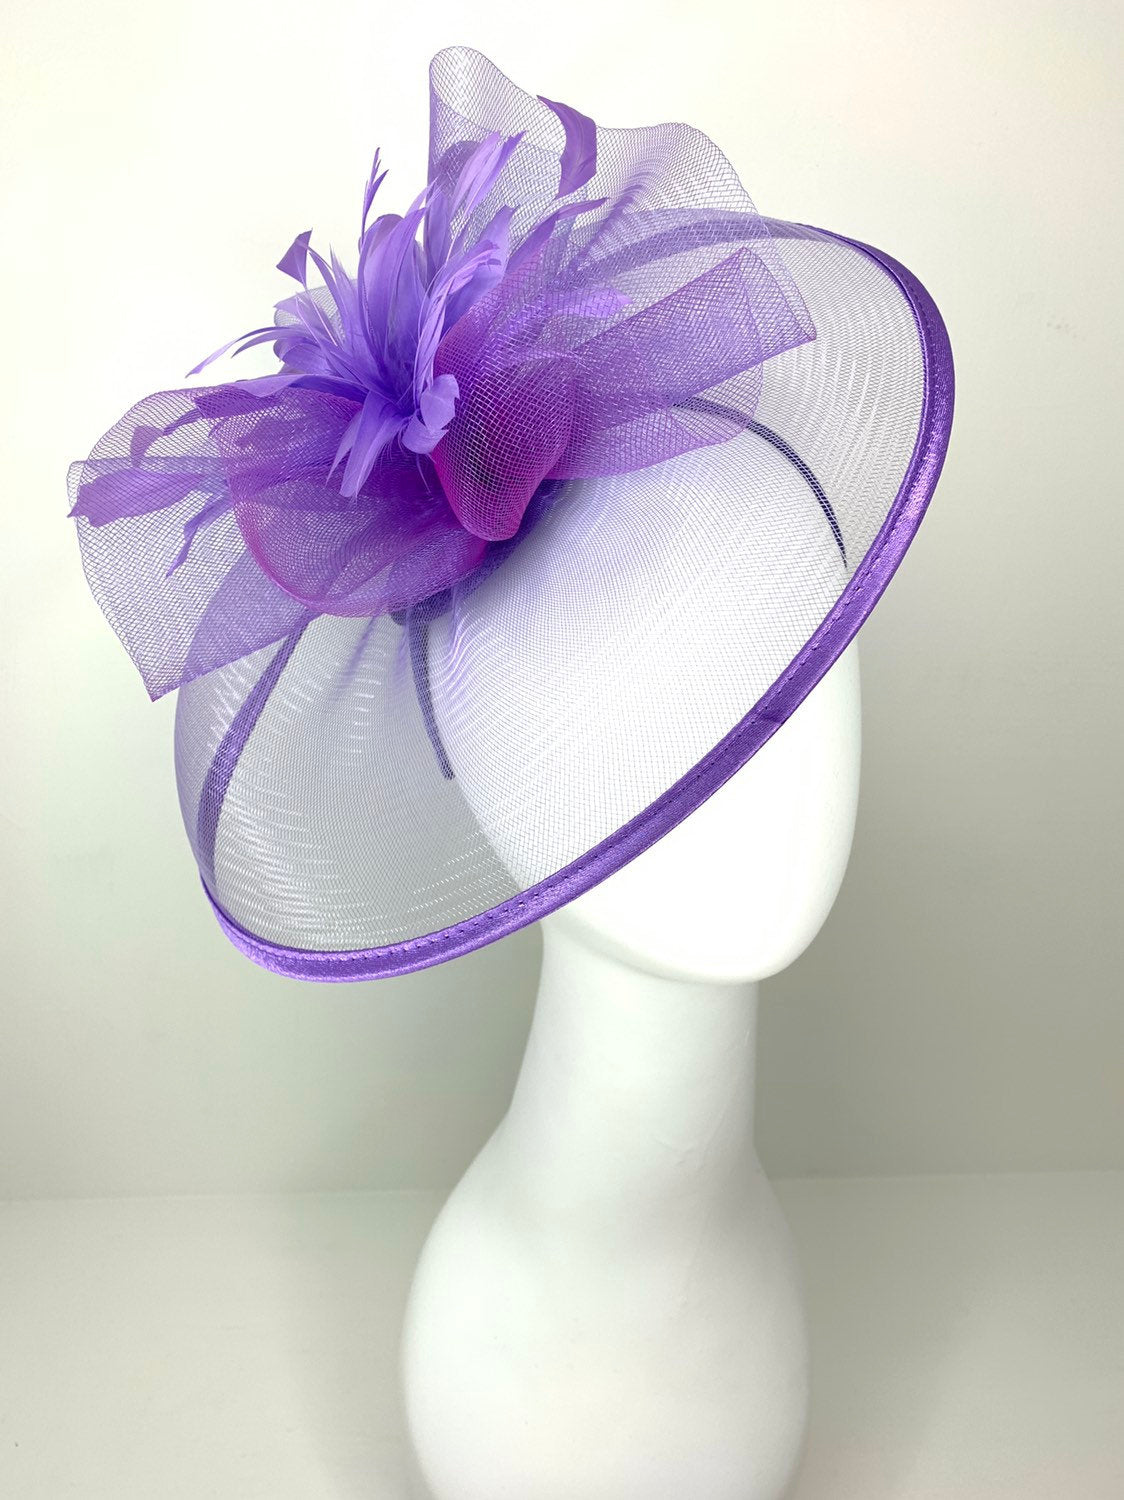 Lilac Fascinator, Derby Hat, Tea Party Hat, Church Hat, Kentucky Derby, British Hat, Wedding Hat Plum Purple, The Celeste, The Hat Hive